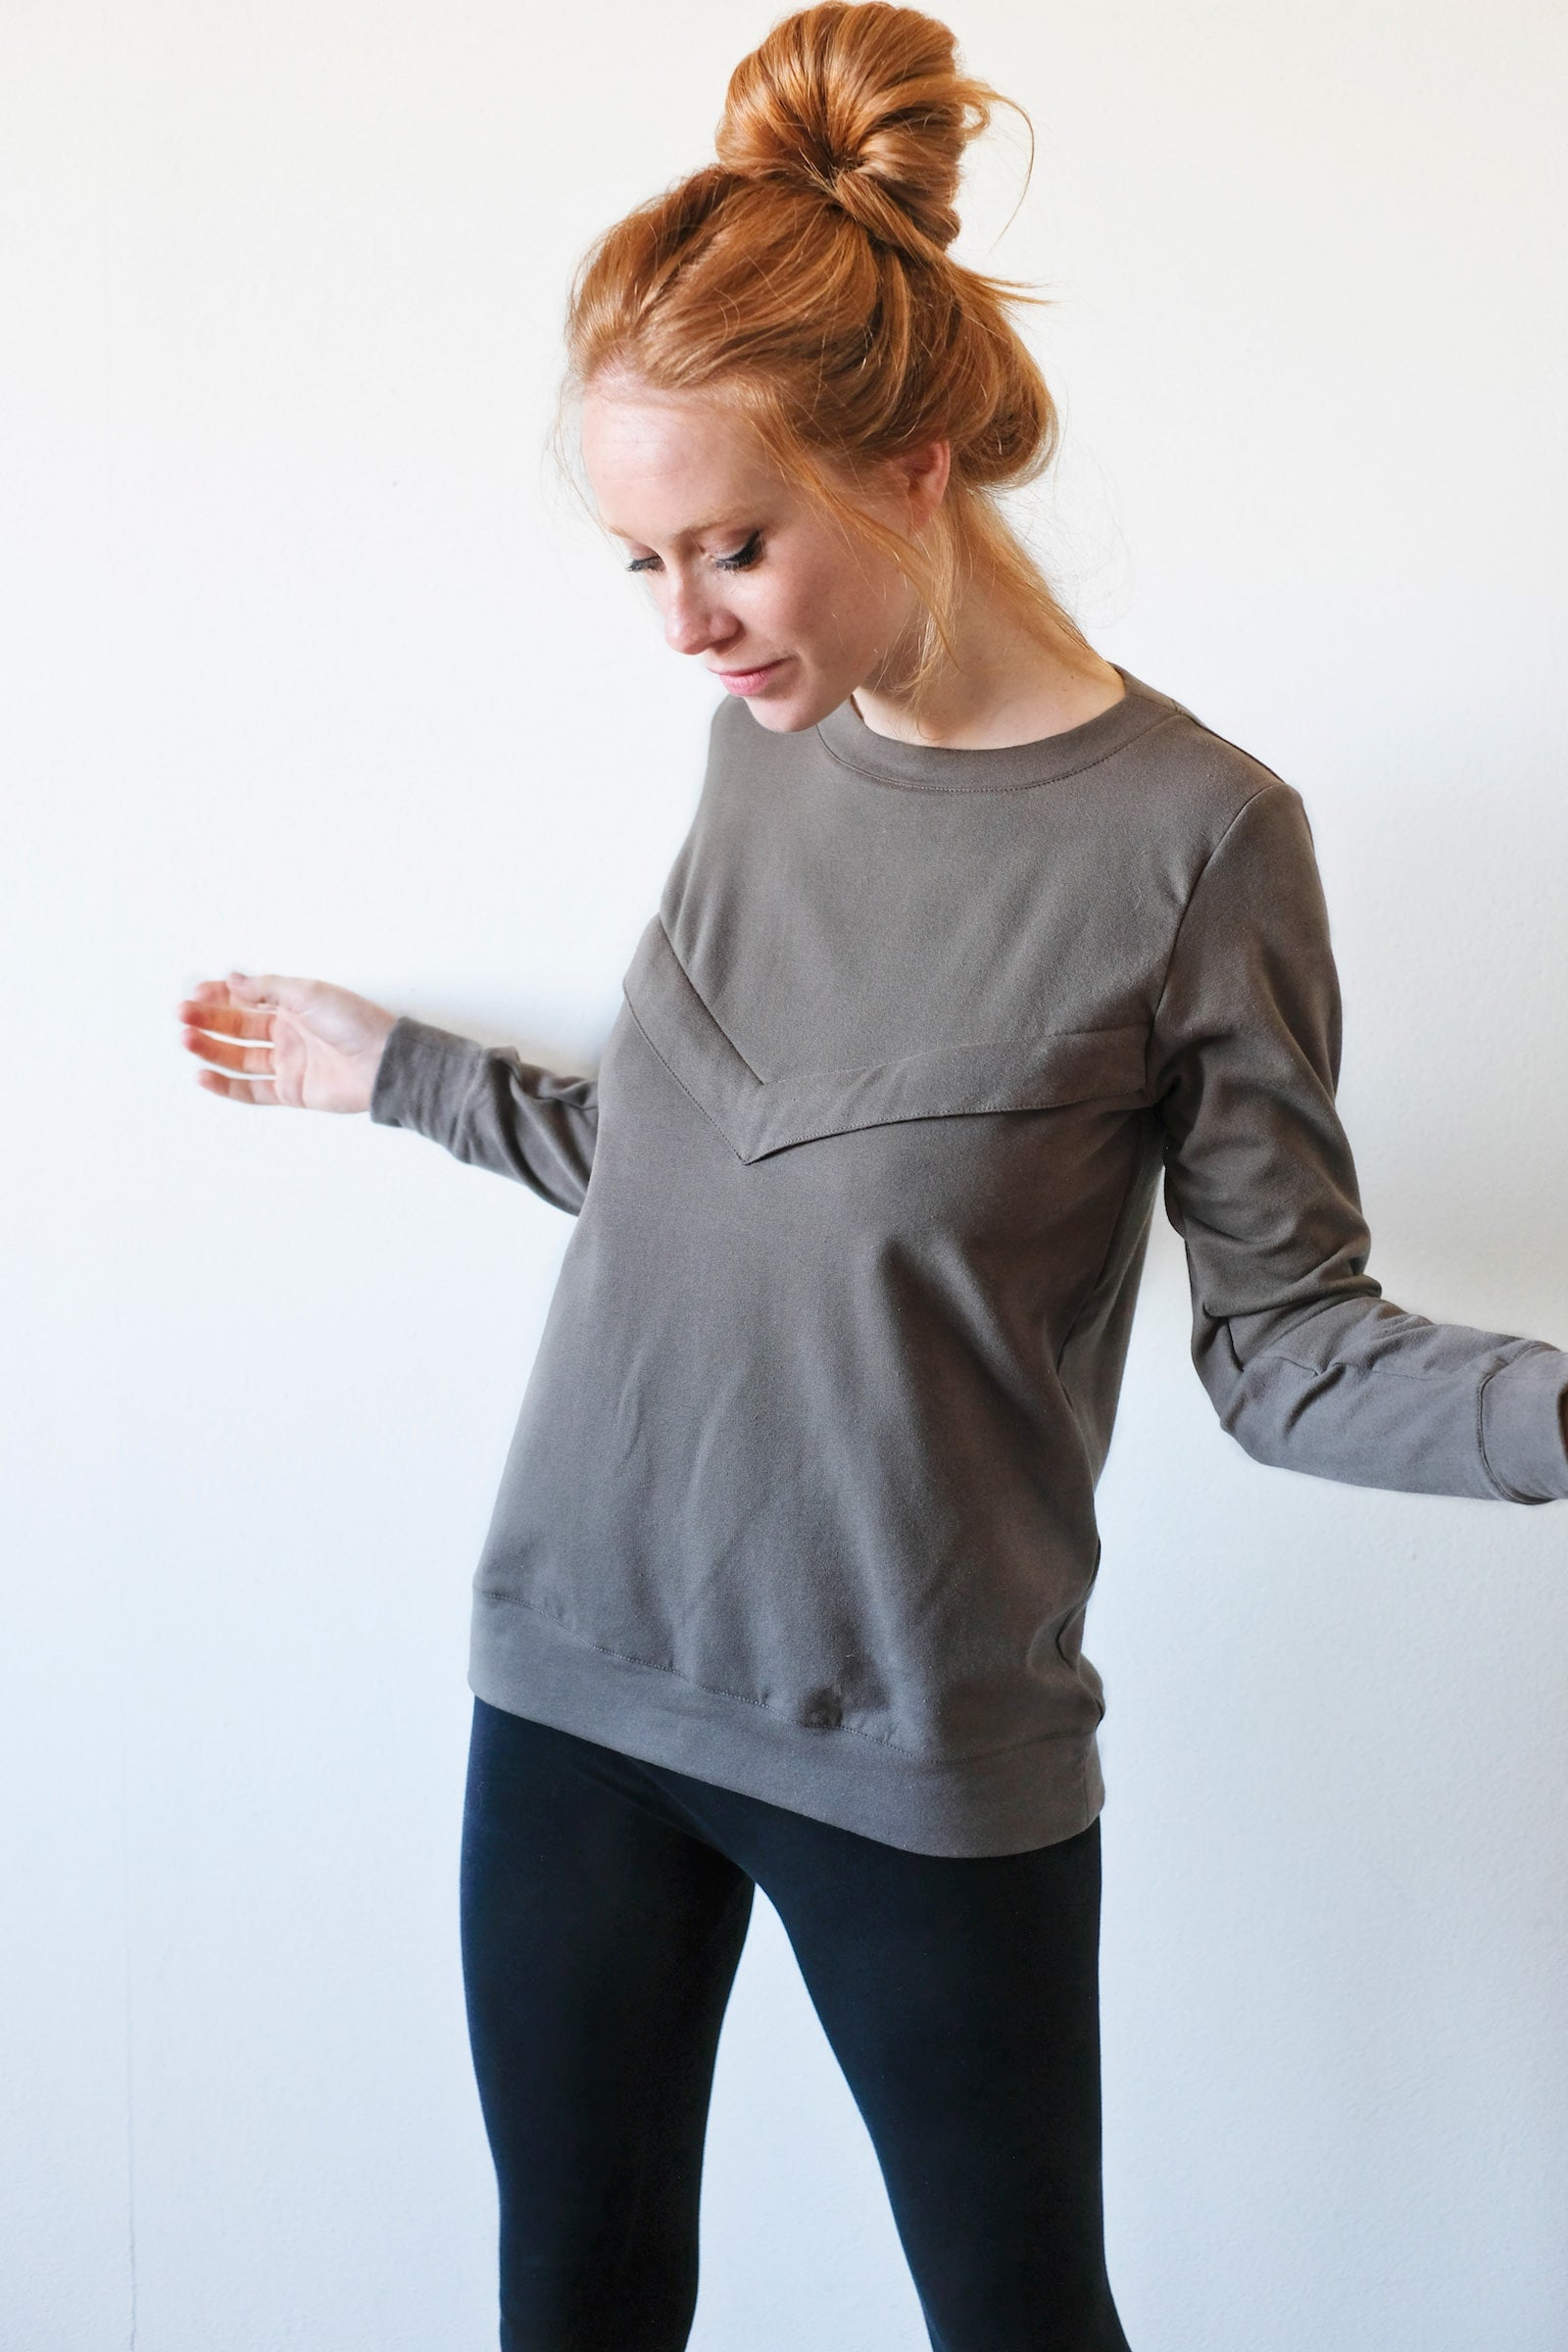 Gemma nursing sweatshirt - military